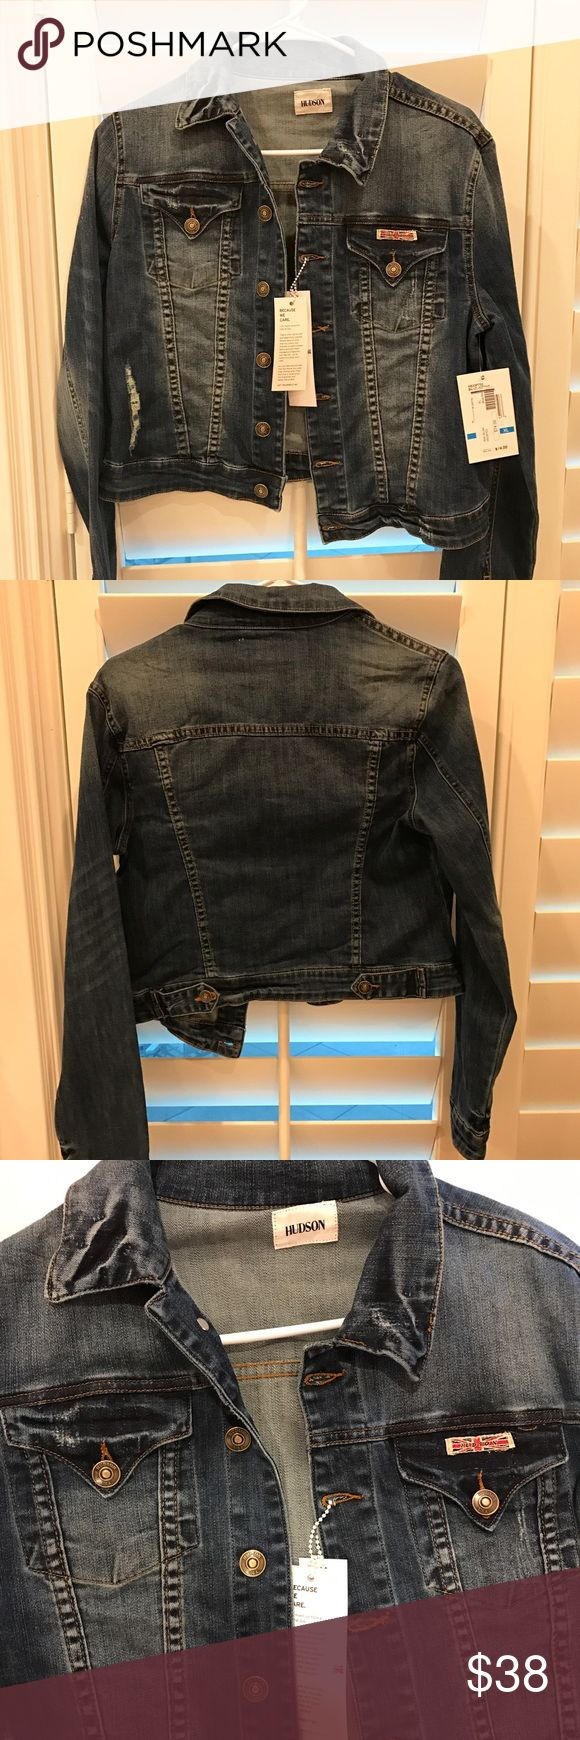 Hudson Jean Jacket Supper cute kids XL Hudson jean jacket! I am 5feet 3inches tall, size XS woman's and it's a little big on me! Great price and needs a good home! Hudson Jeans Jackets & Coats Jean Jackets